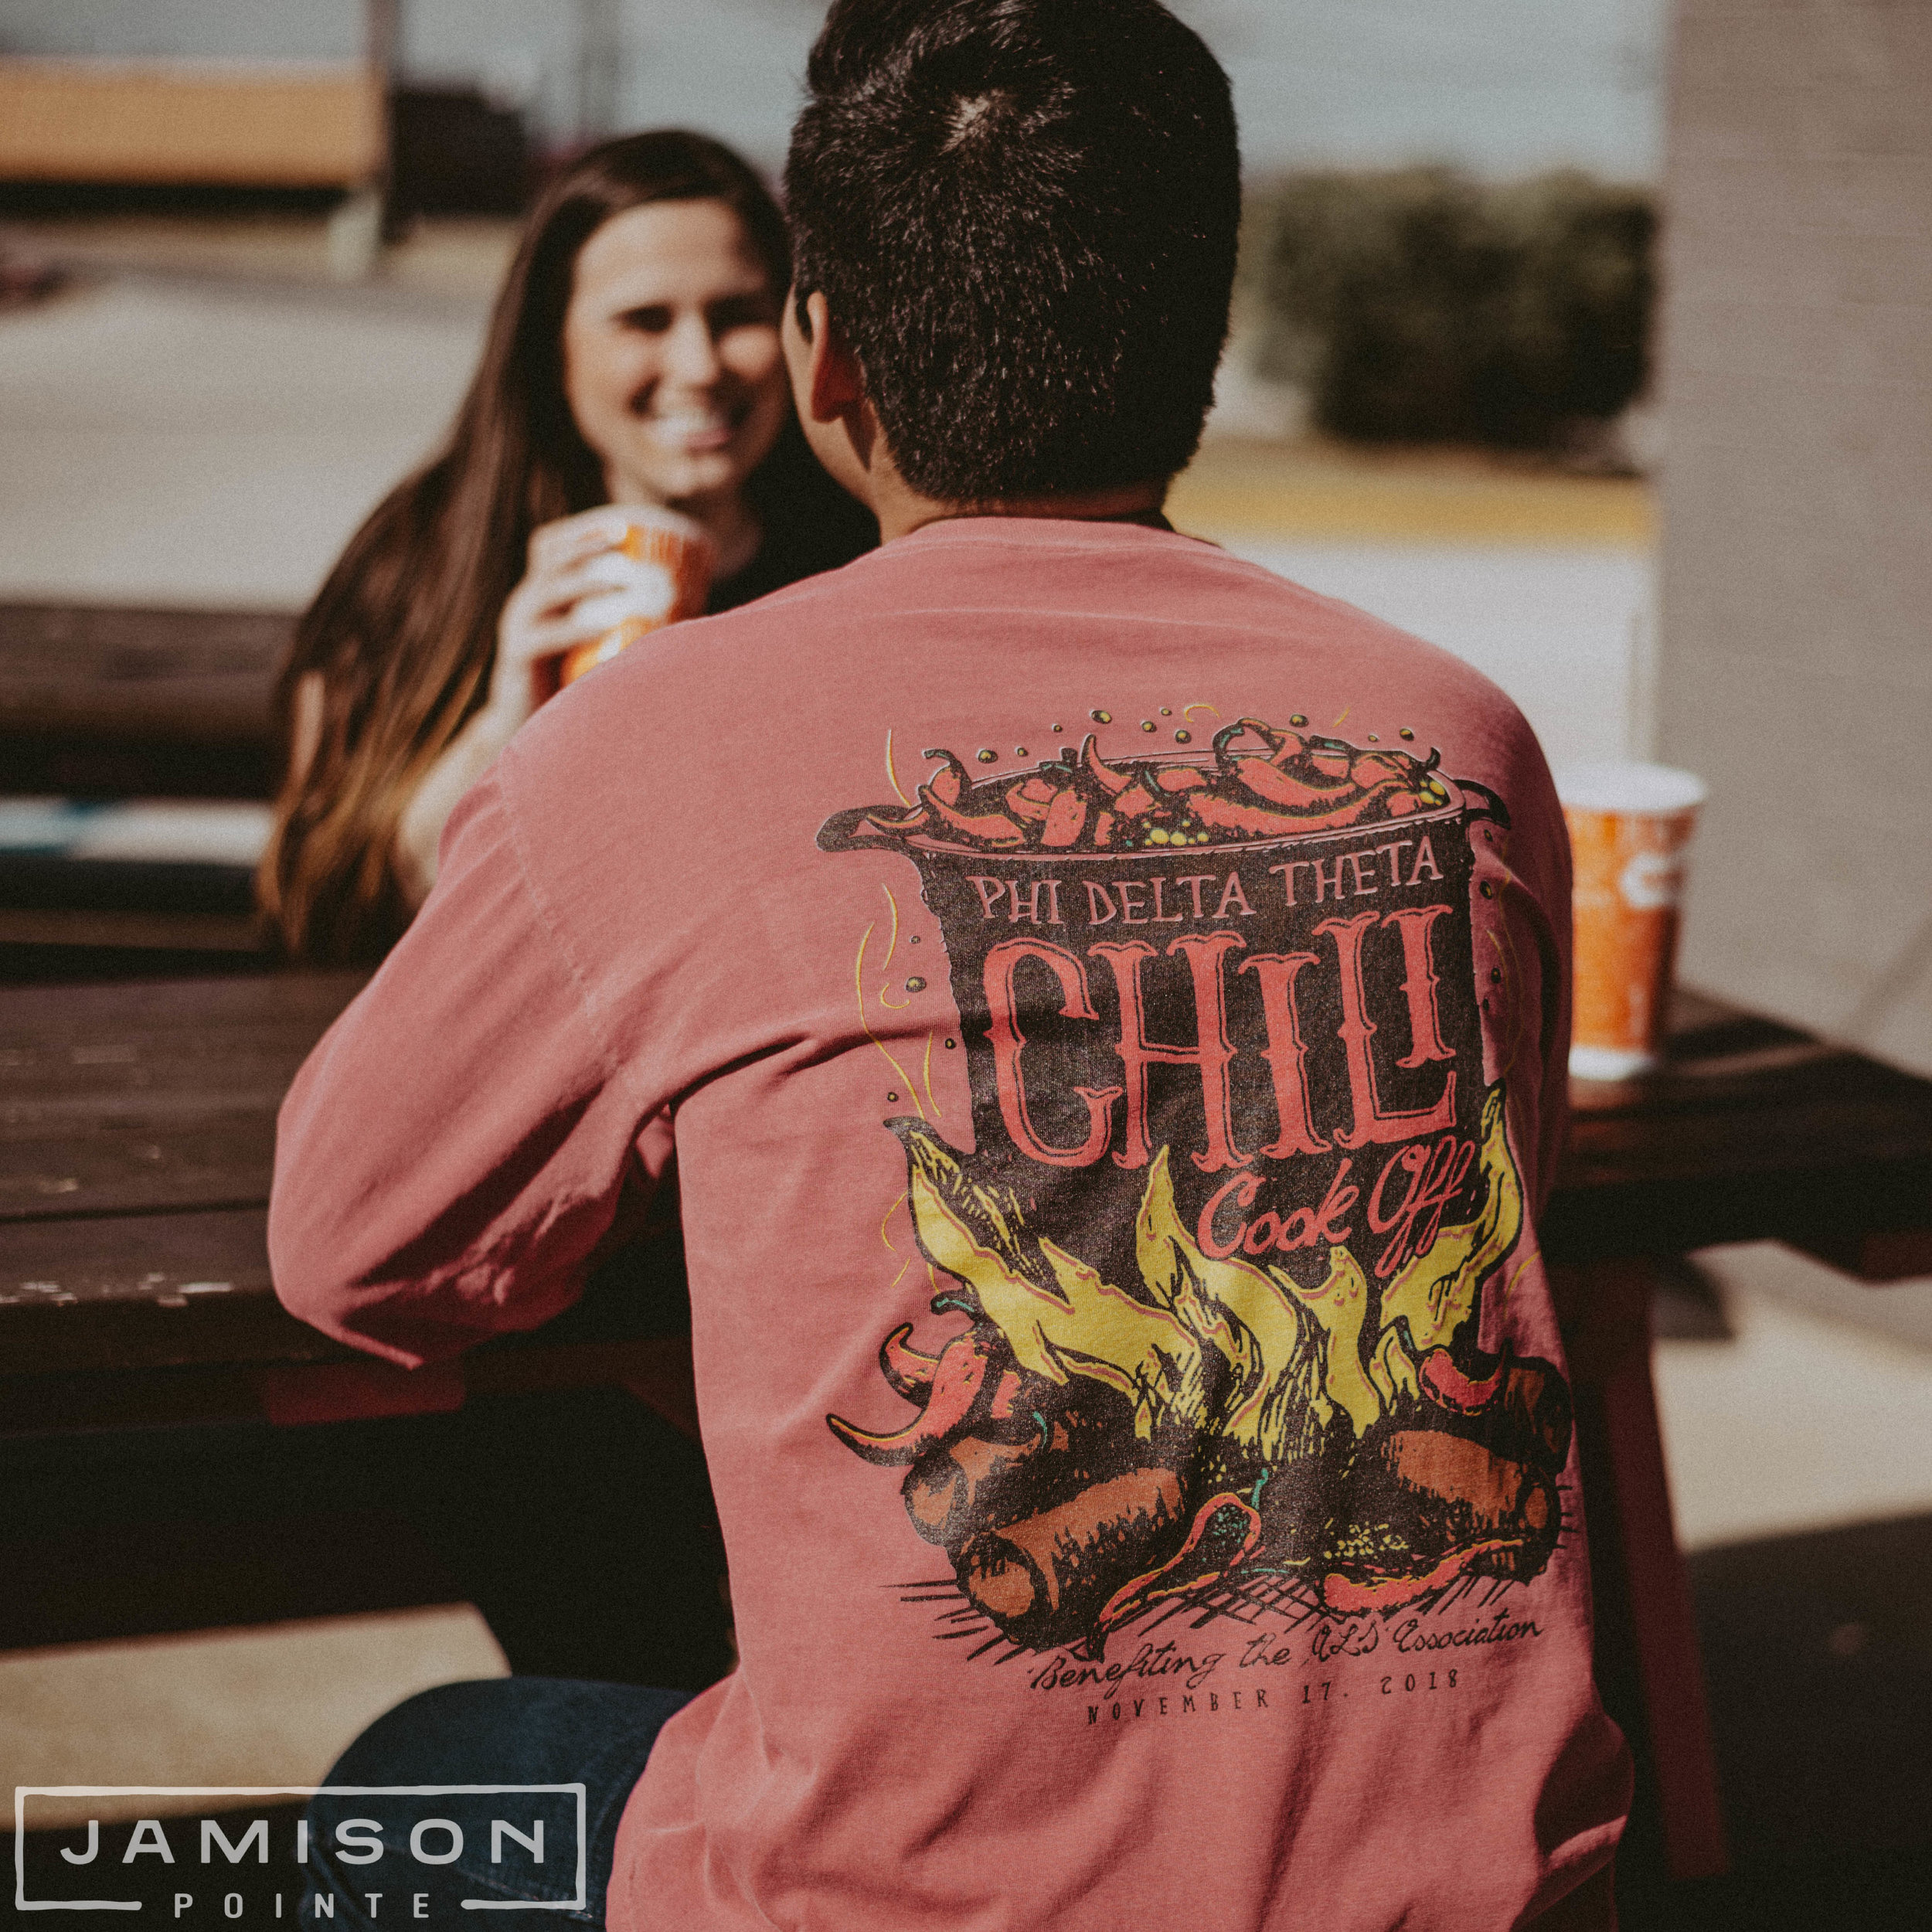 Phi Delta Theta Chili Cook Off Tee